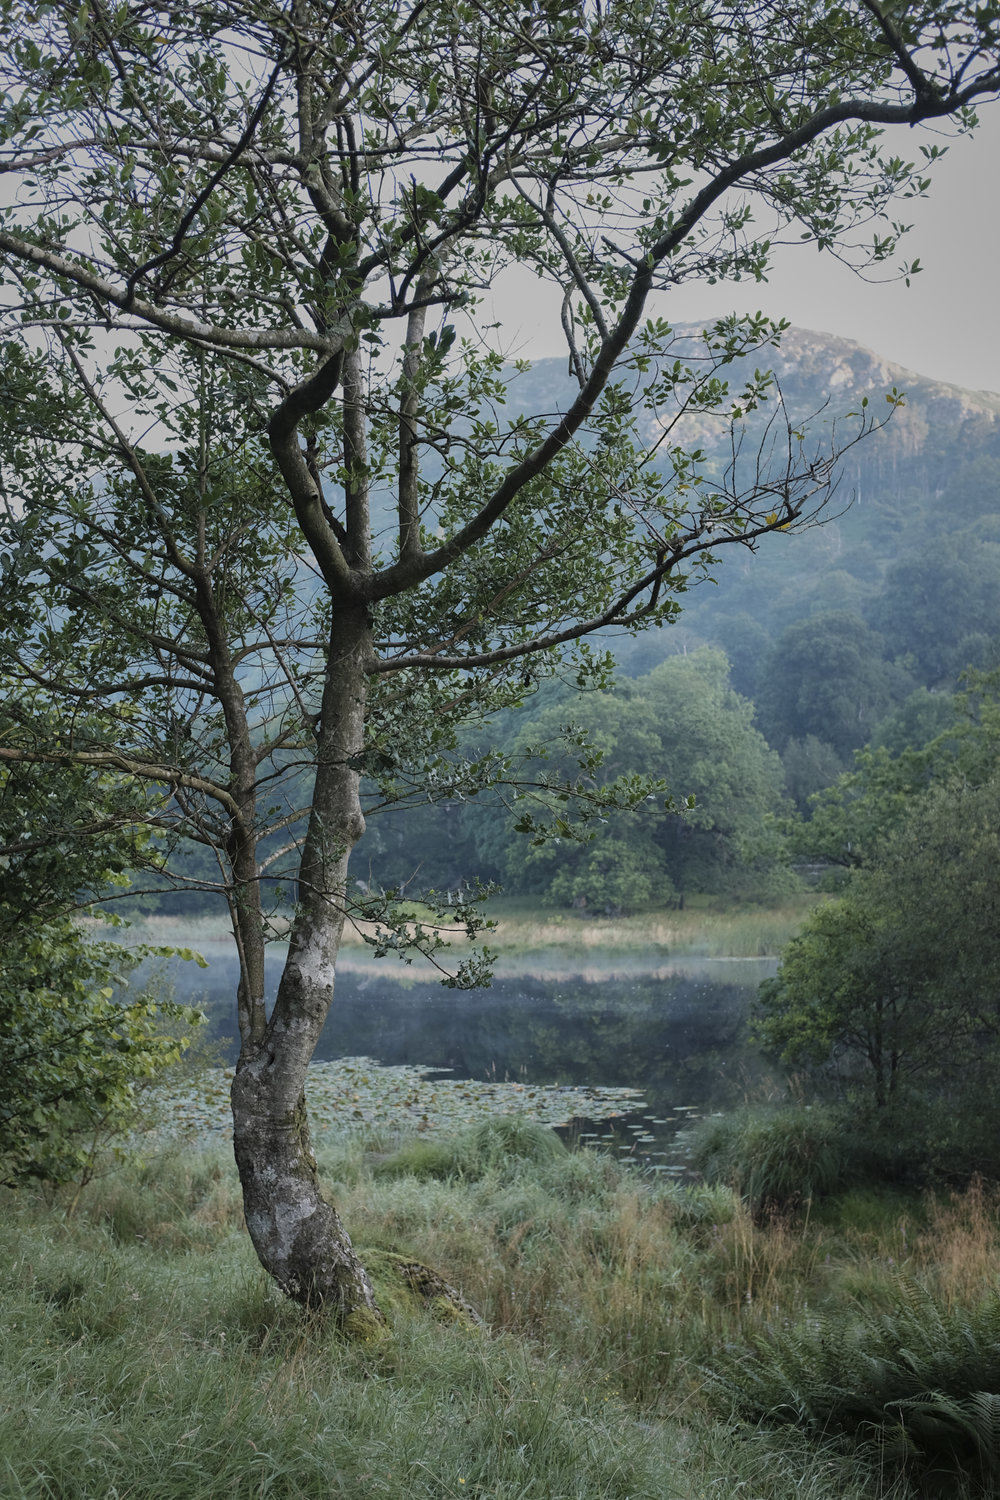 Rydal Water at sunrise on a late summer morning. Click the image for a better view.